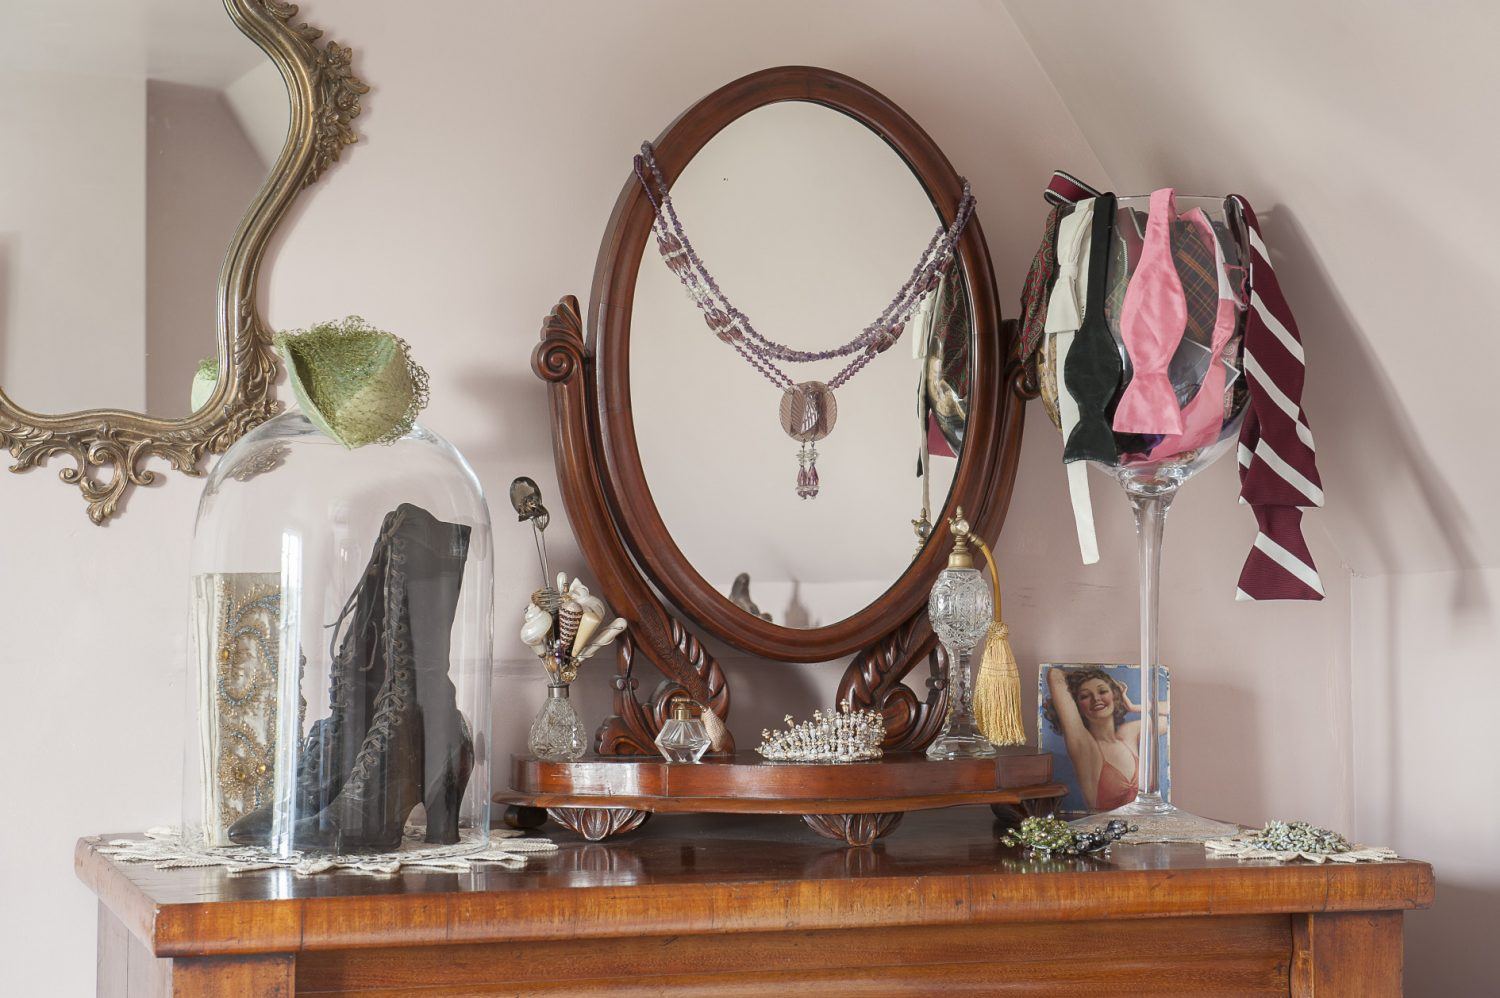 The two guest rooms, in the original south side of the house, are packed with more found treasures. In the pink bedroom, hat pins, hat boxes, Victorian laced boots, tiaras and bow ties share space on top of a chest of drawers